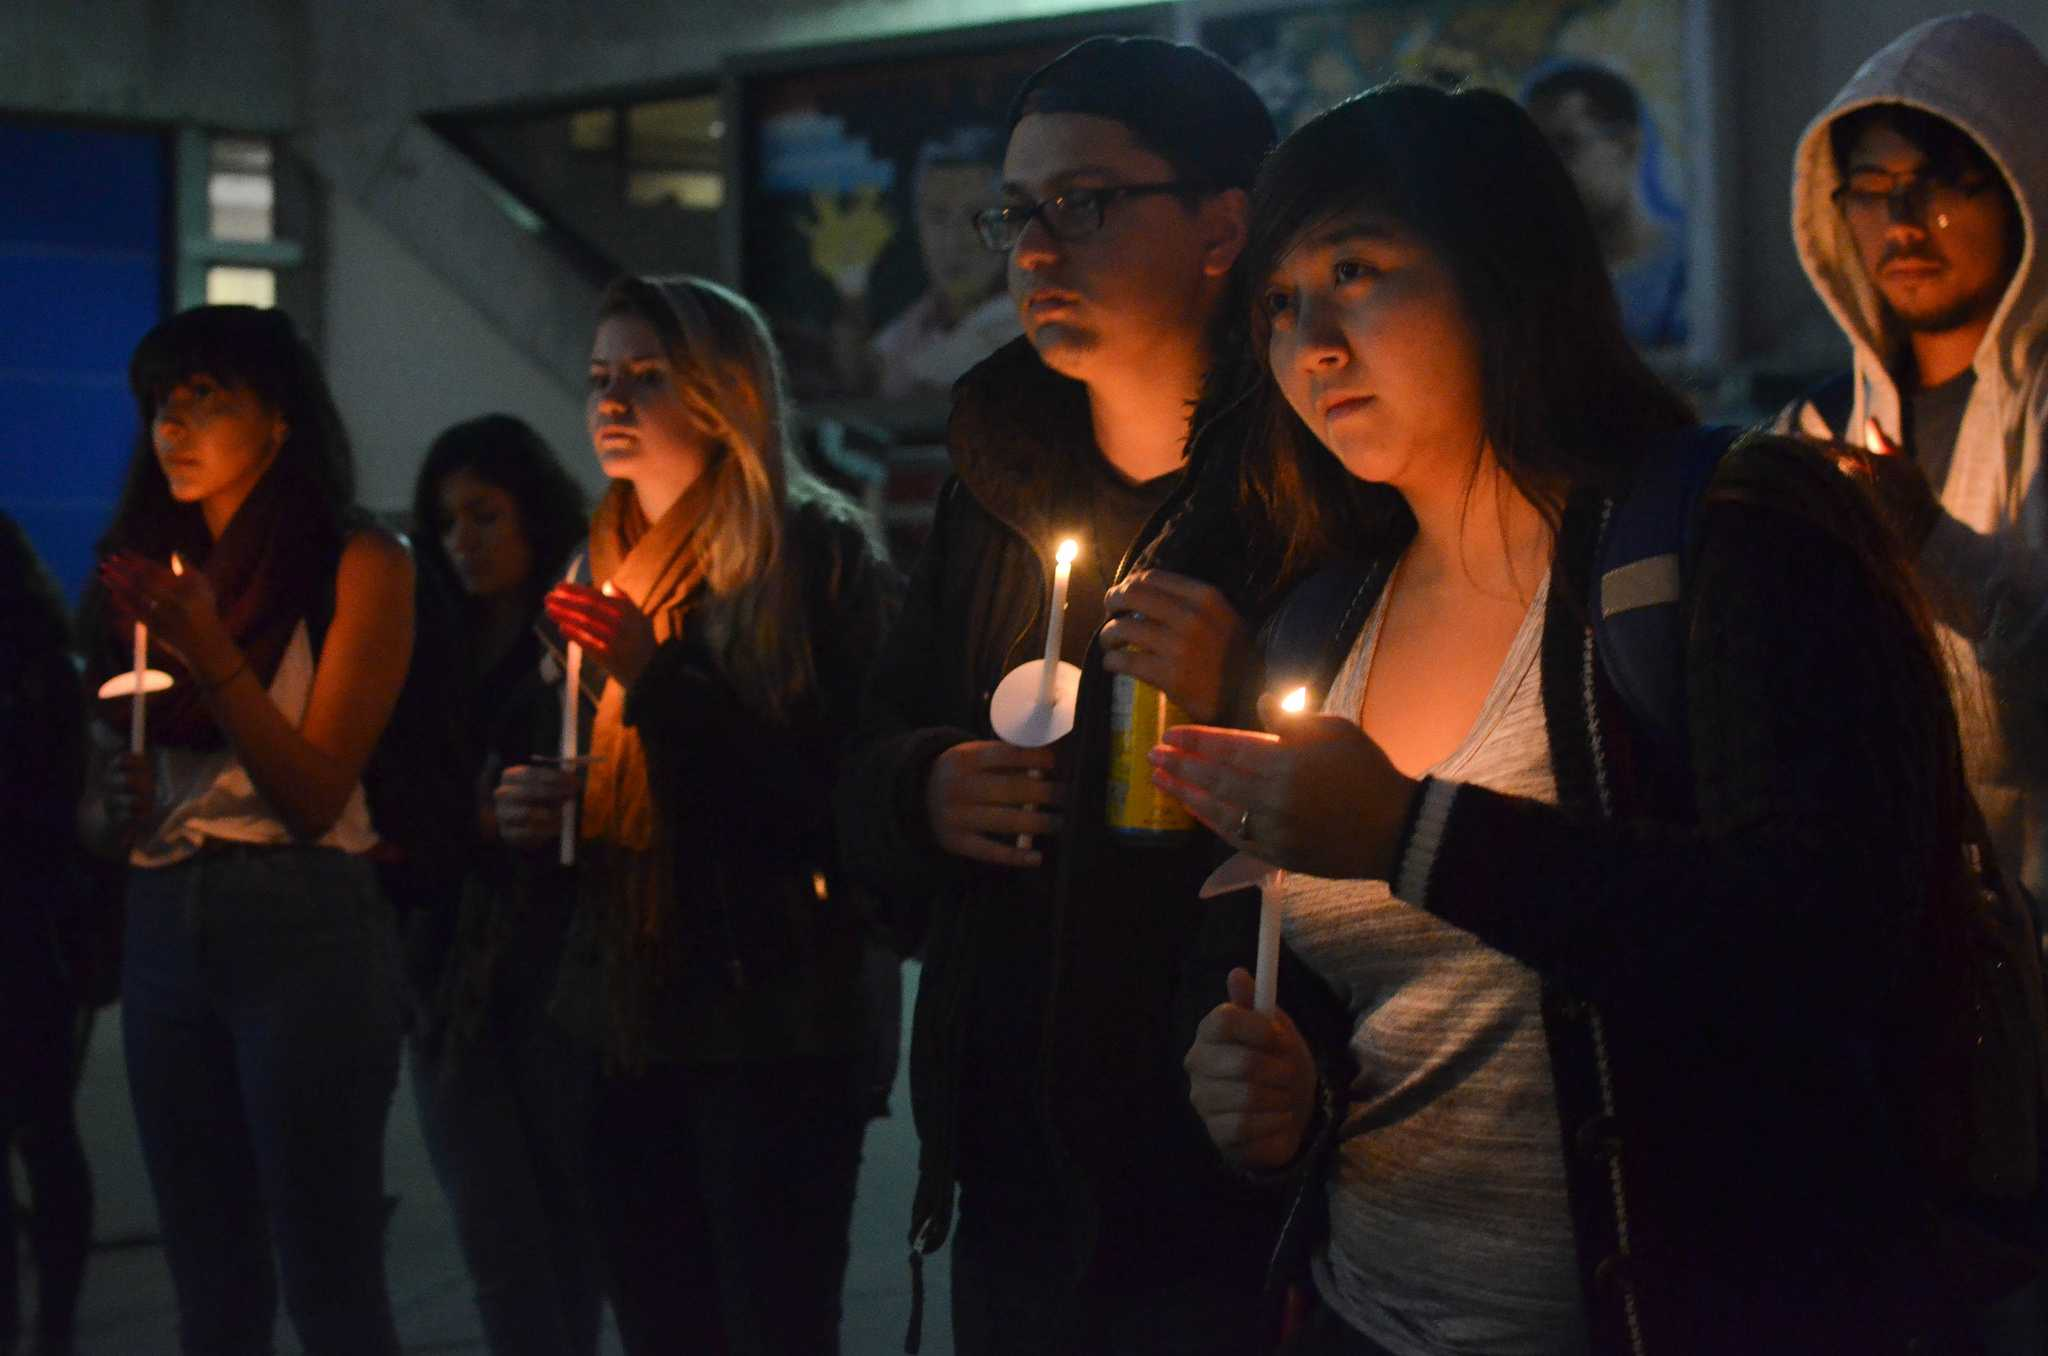 Students gather for the SF State Vigil Against Violence in Malcolm X Plaza Tuesday, Nov. 17, 2015. The vigil is in honor of death of Cal State Long Beach student Nohemi Gonzalez and many   others during the attacks in Paris Friday, Nov. 13, 2015. (Melissa Minton / Xpress)